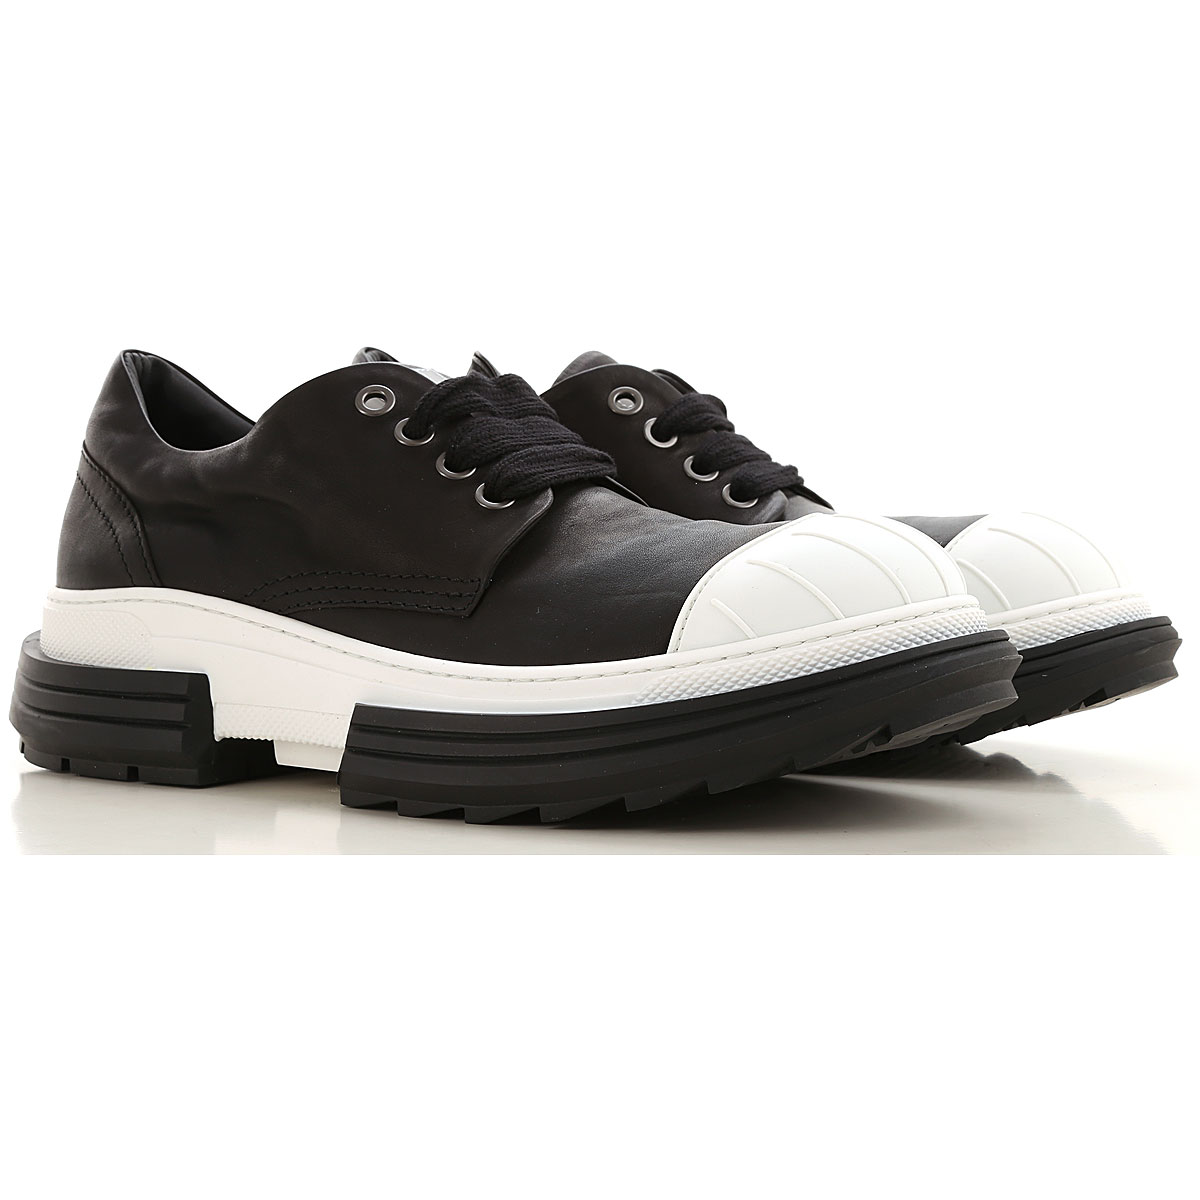 Beyond Sneakers for Men, Black, Leather, 2019, 10 10.5 11.5 8 9